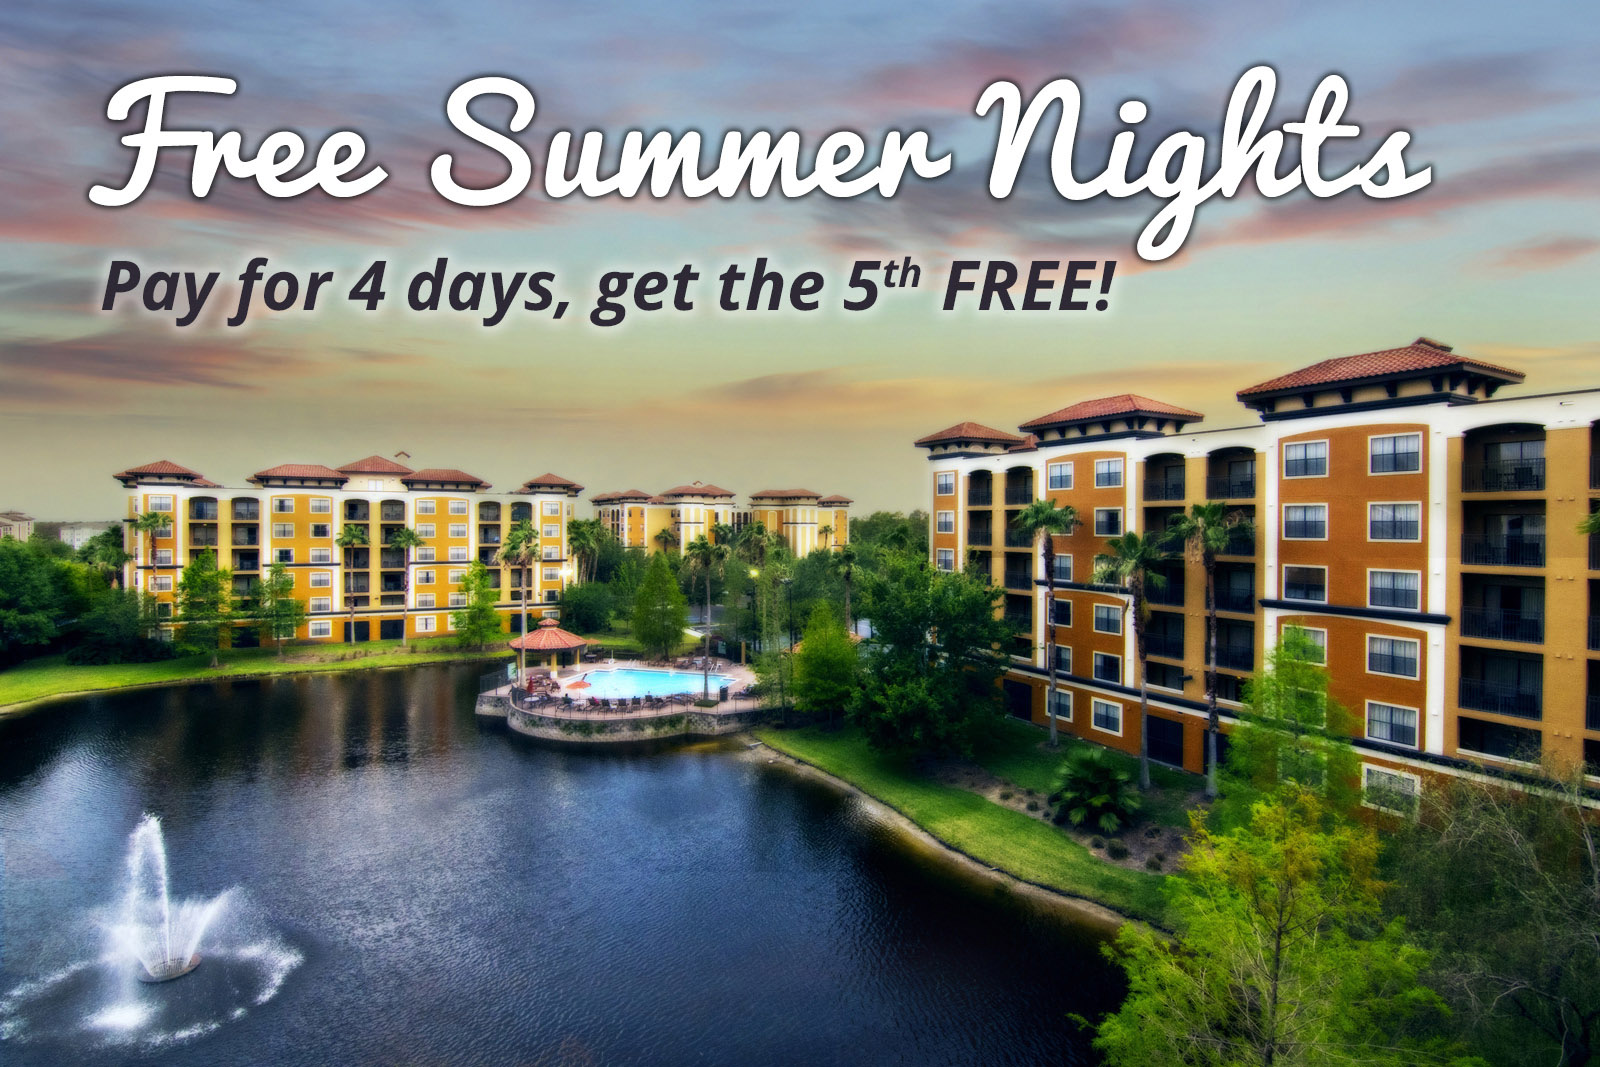 Free Summer Nights | Pay for 4 days, get the 5th FREE!